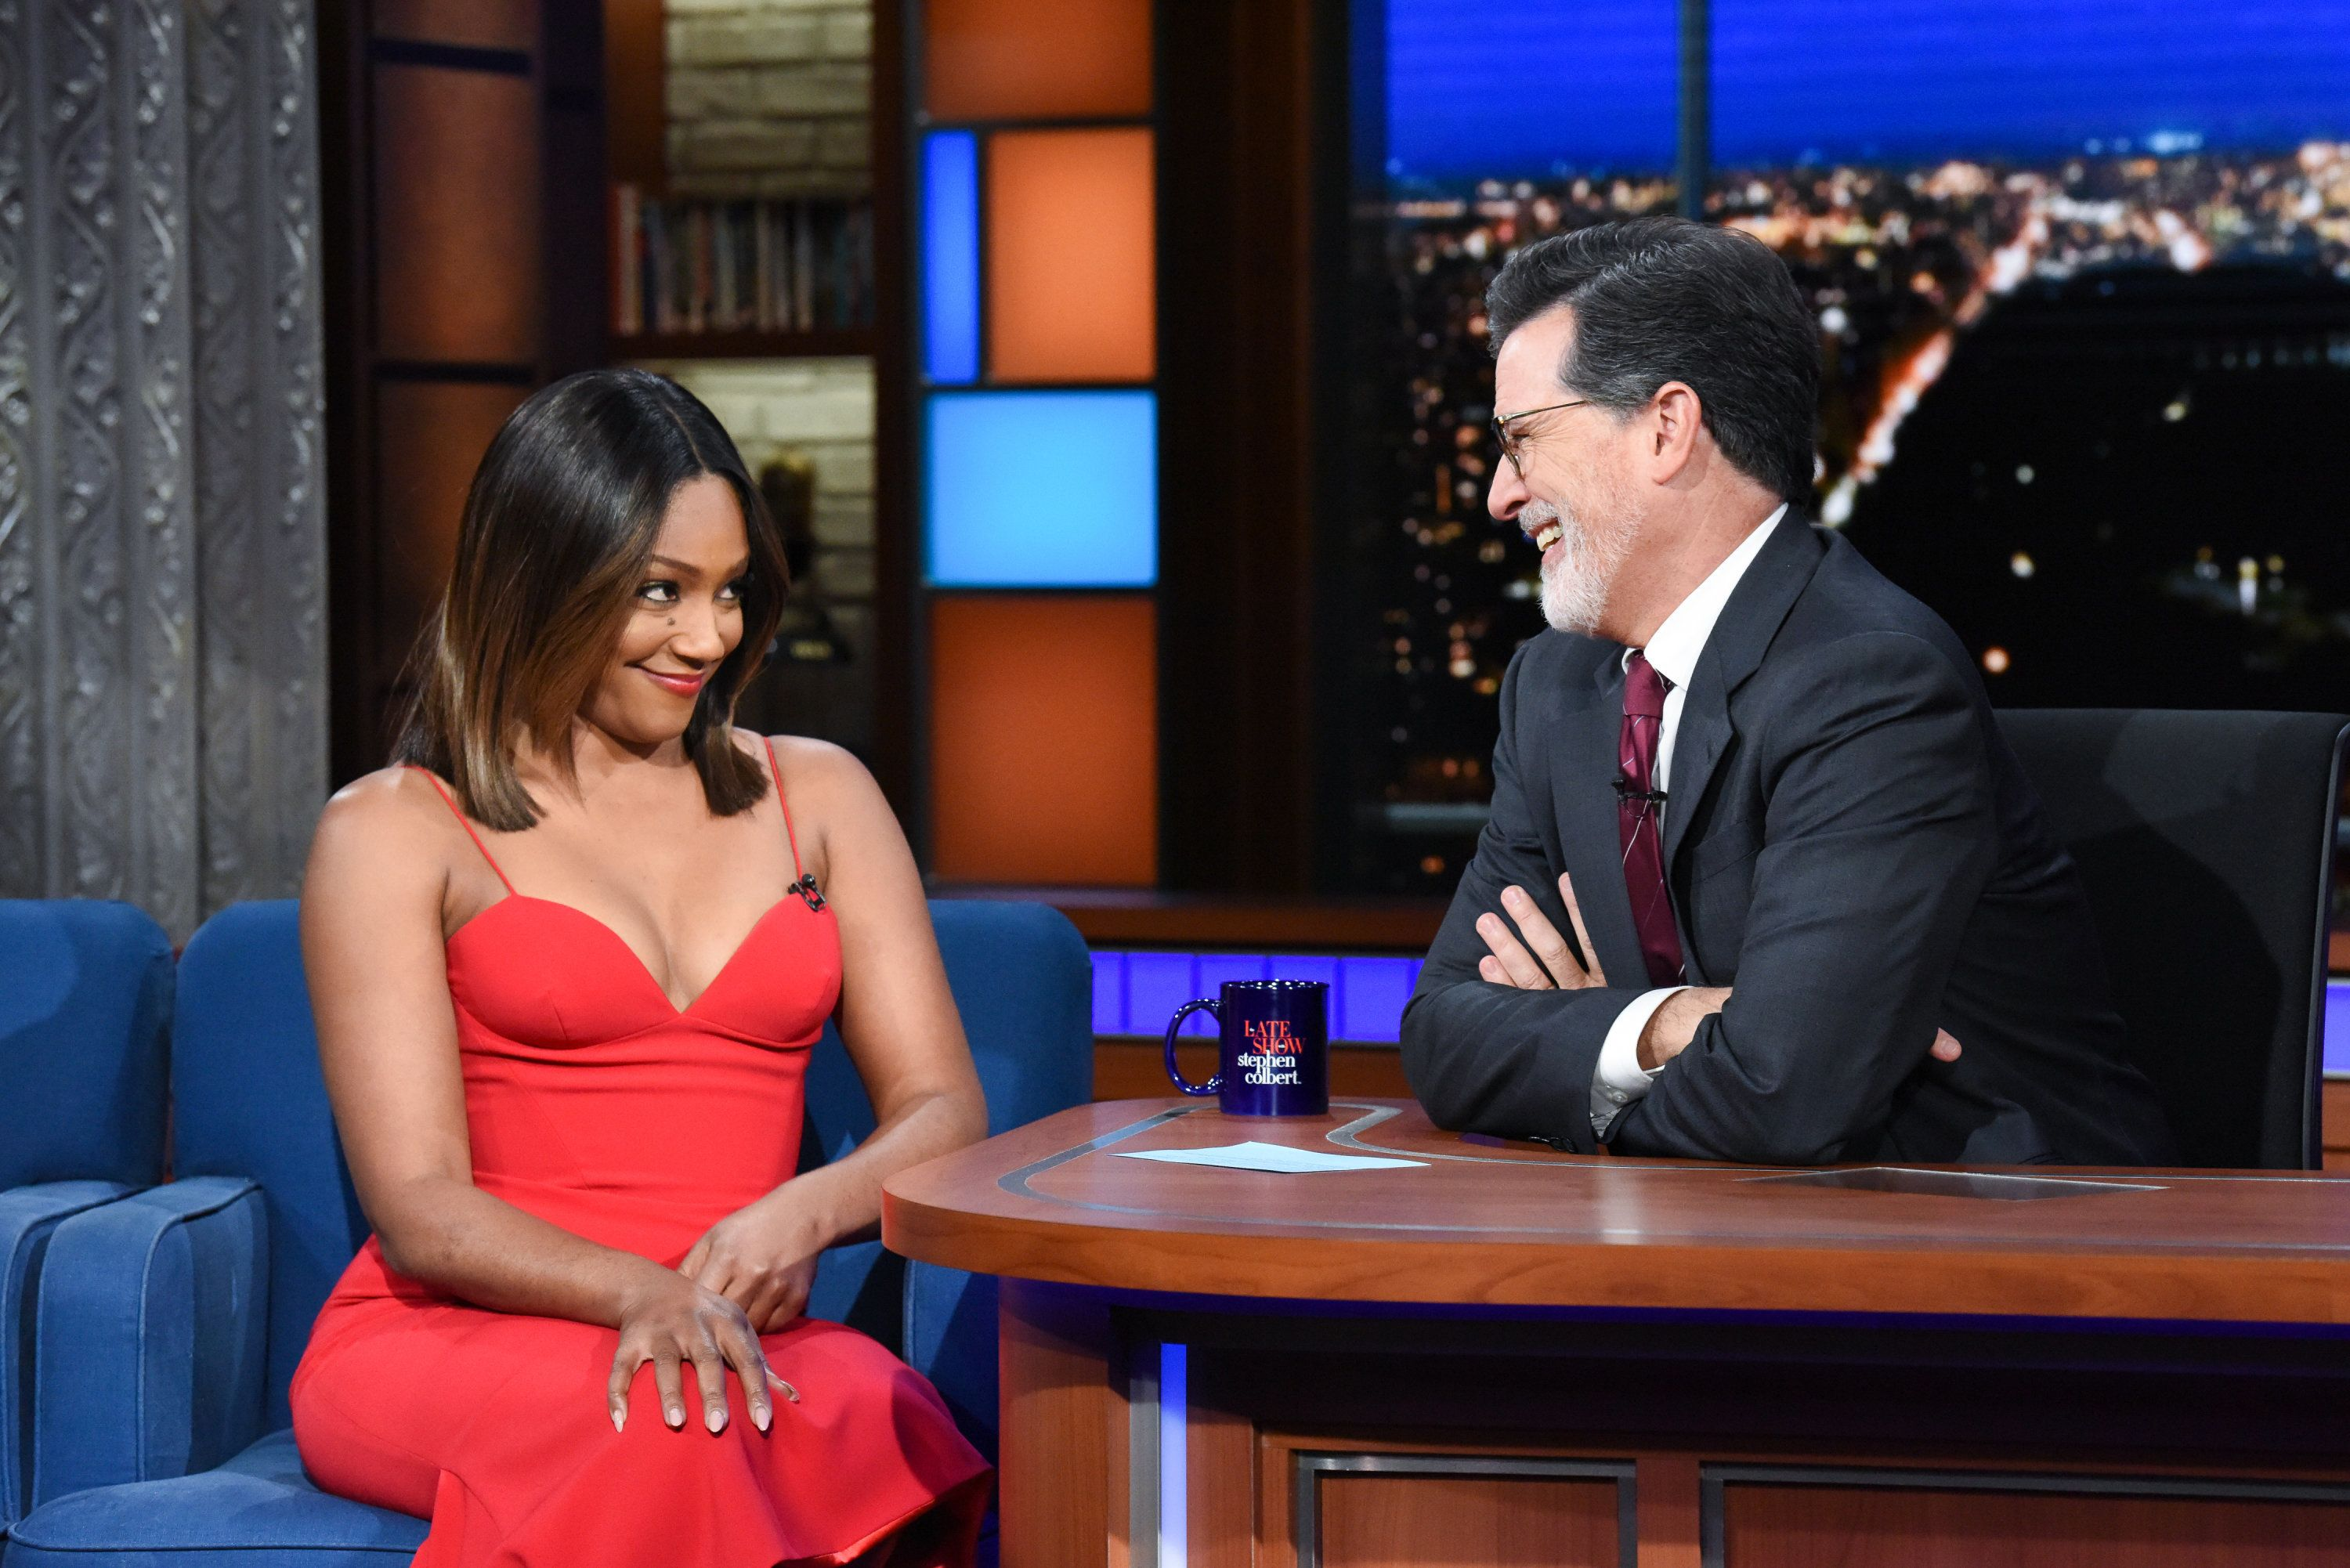 Tiffany Haddish On Her Love Life: 'Batteries Are A Girl's Best